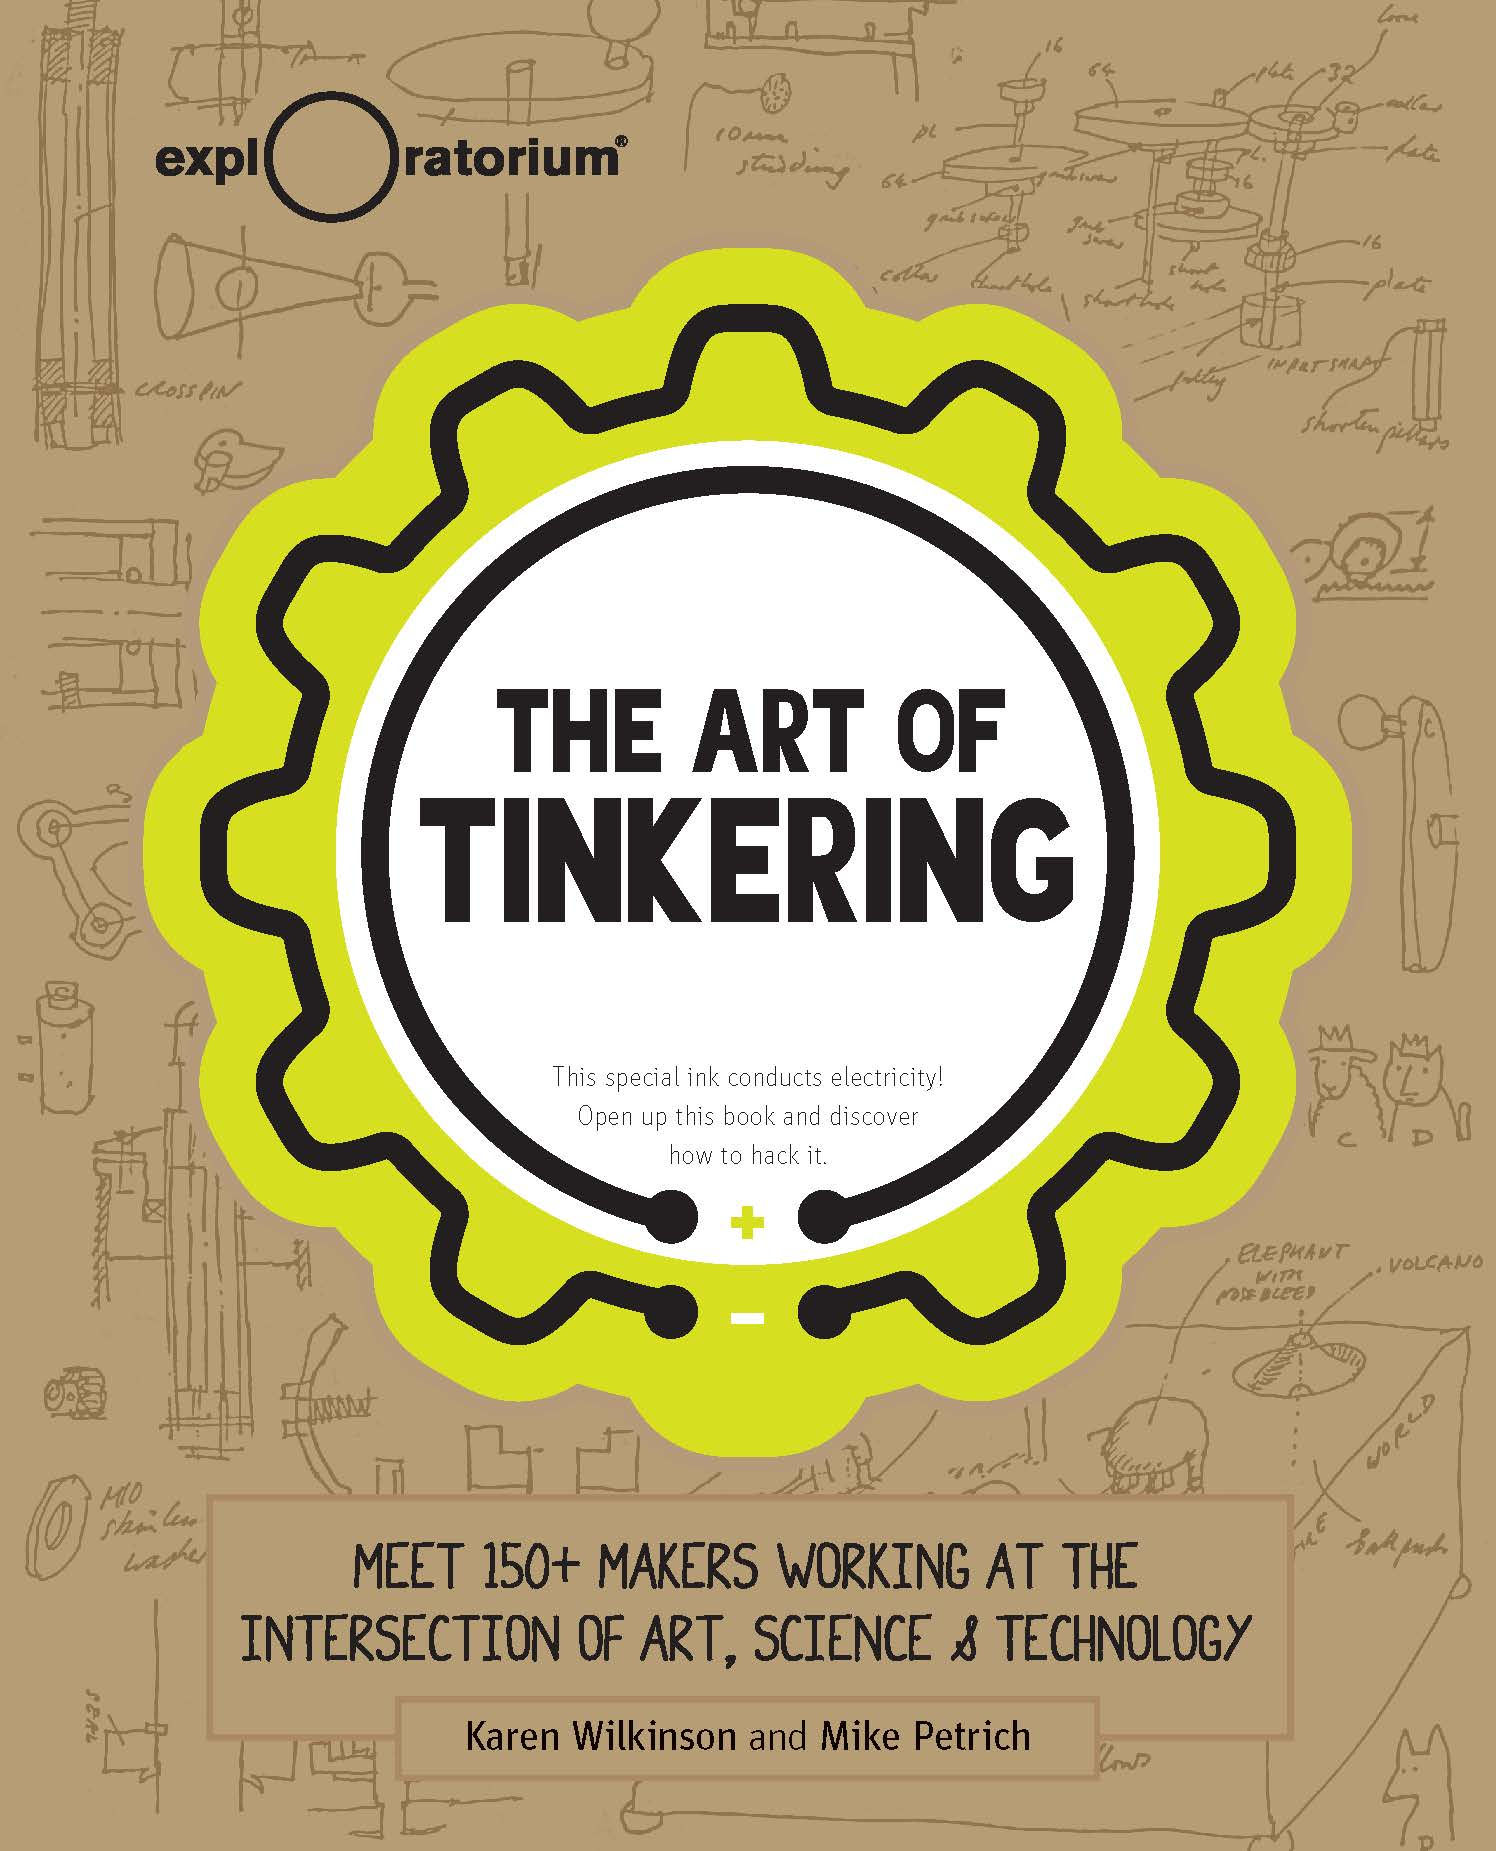 Art-of-tinkering-9781616286095_hr